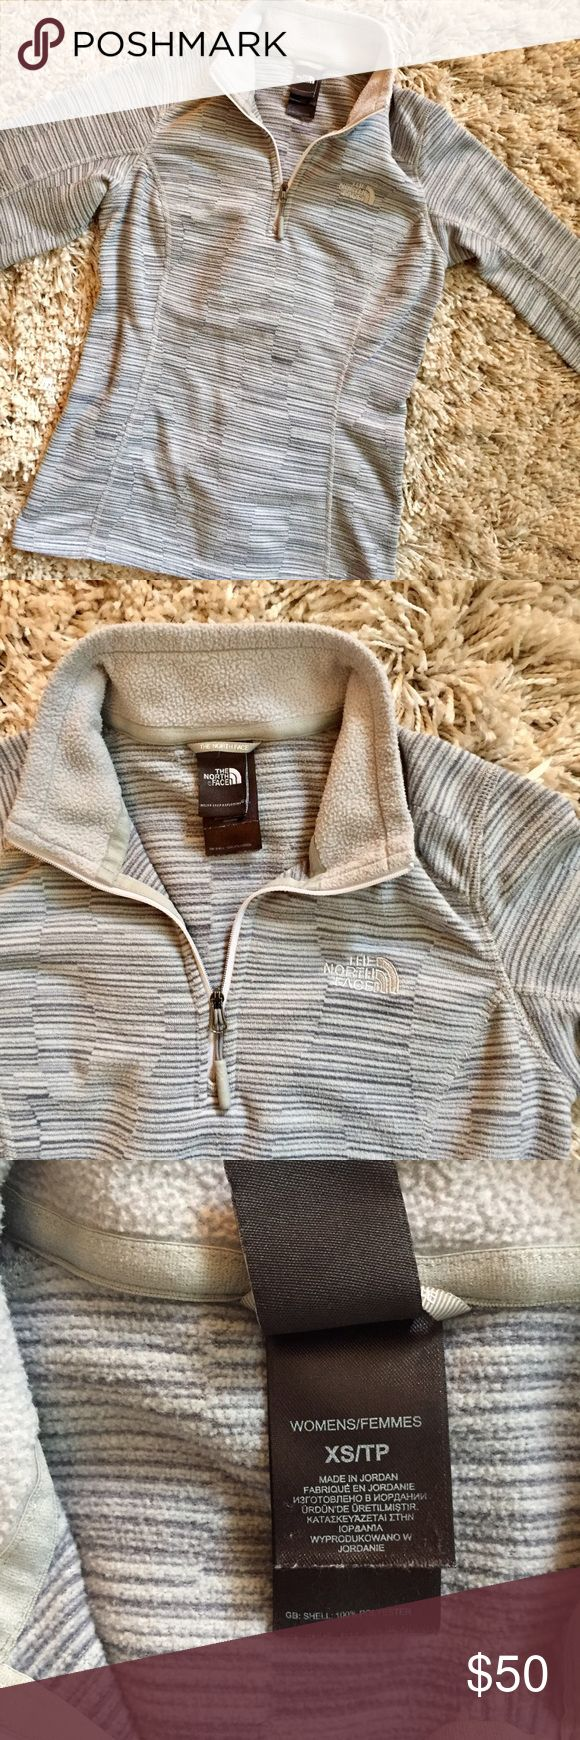 North Face Half Zip, Size XS + Light and dark gray pattern  + 100% polyester  + Great for fall 🍁🍂 + Don't forget to bundle!   ⭐️All items are steamed cleaned and shipped within 48 hours of your purchase.   ⭐️If you would like any additional photos or have any questions please let me know.  ⭐️Sorry, no trades. But will listen to ALL fair offers. Thanks for shopping! North Face Sweaters